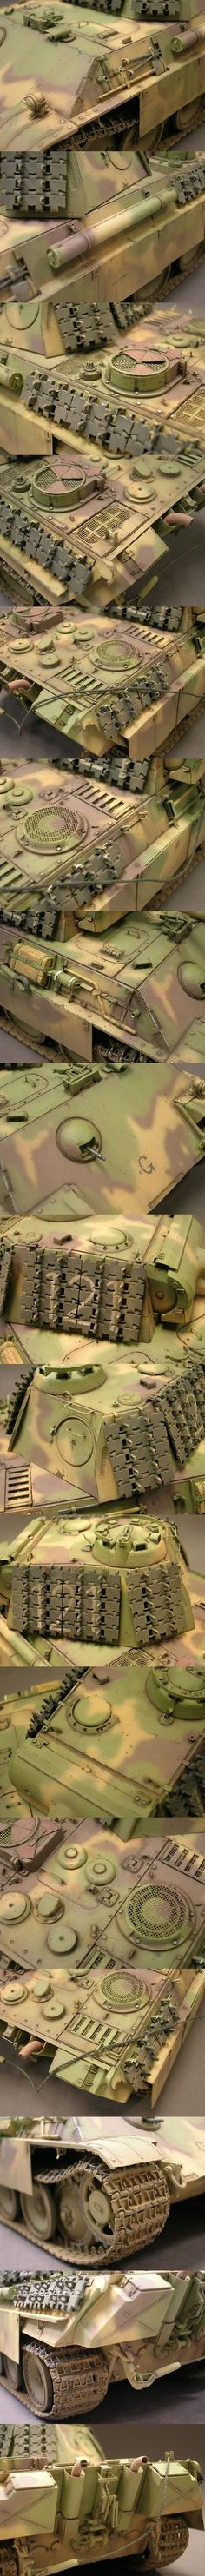 Sd.Kfz. 171. Panzerkampfwagen V Panther G 1/35 Scale Model